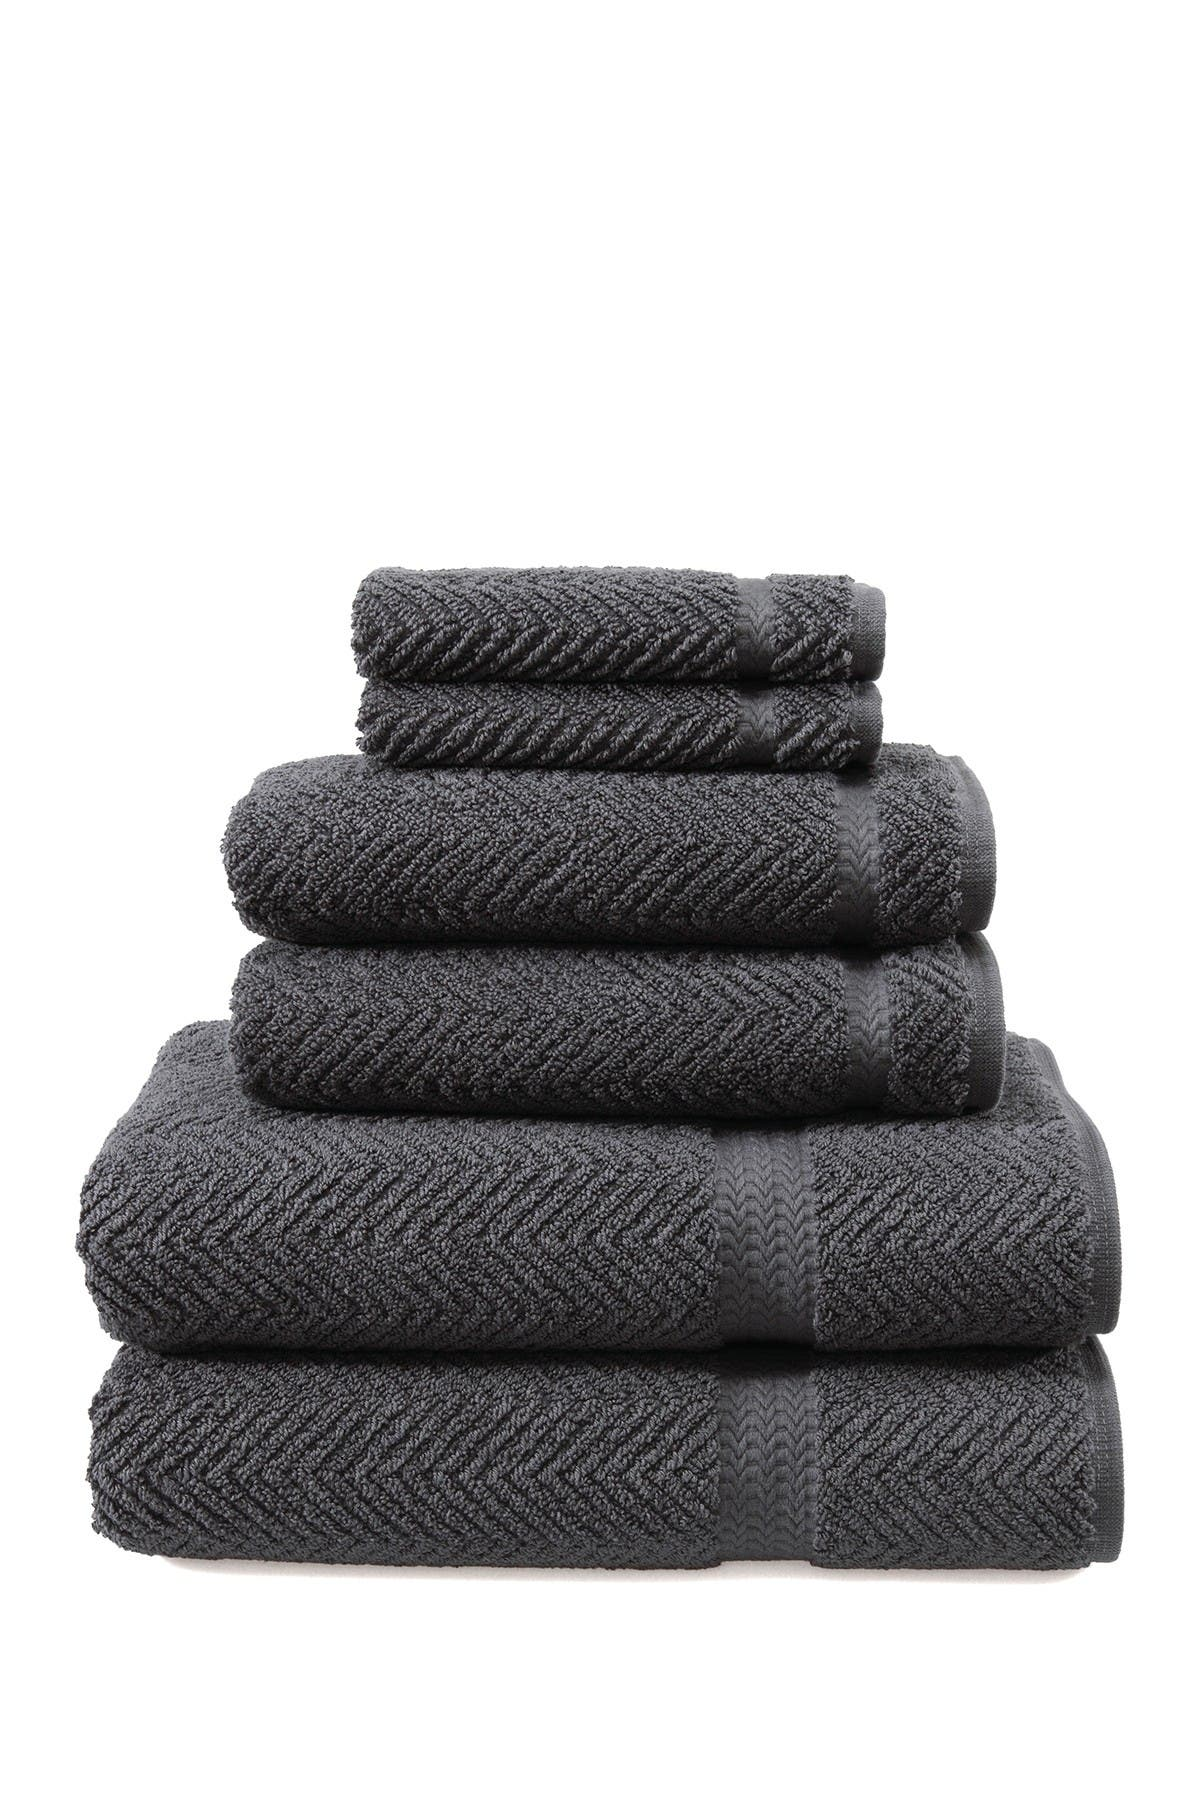 Image of LINUM HOME Grey Herringbone 6-Piece Towel Set